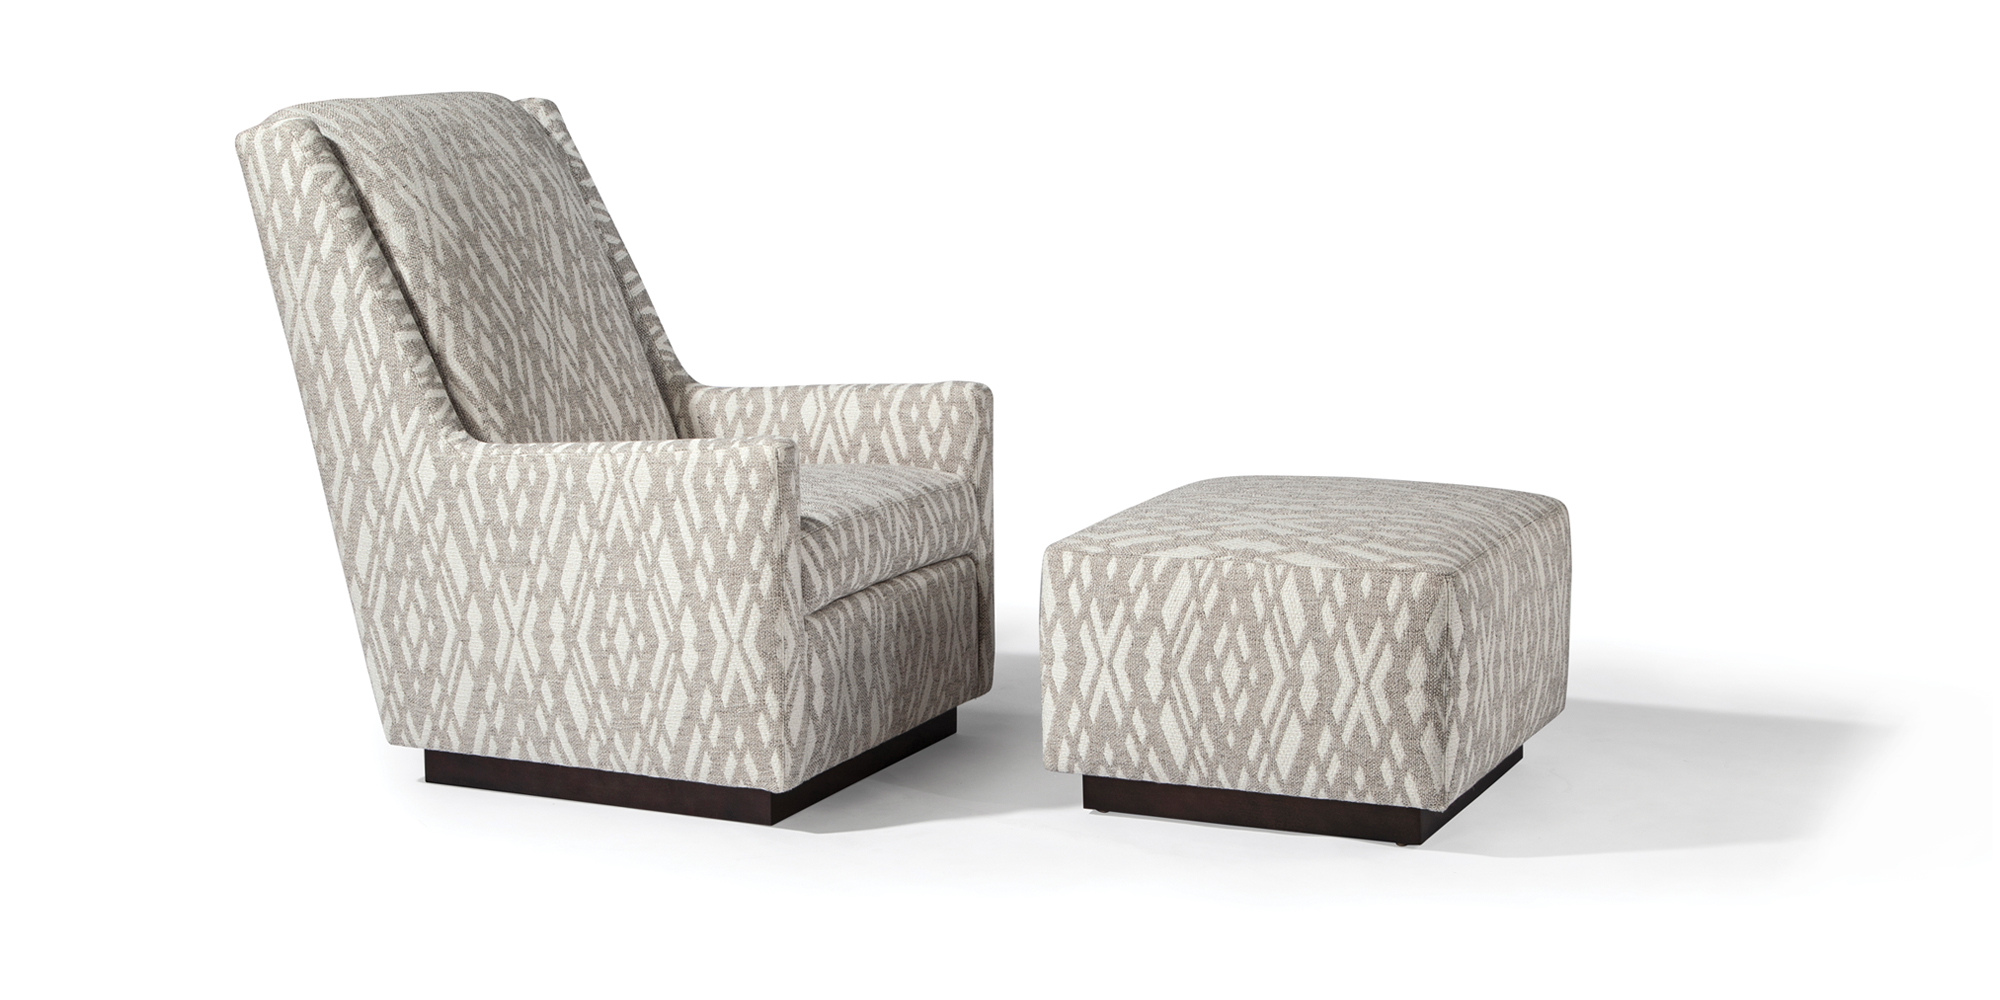 Clarence Chair and Ottoman